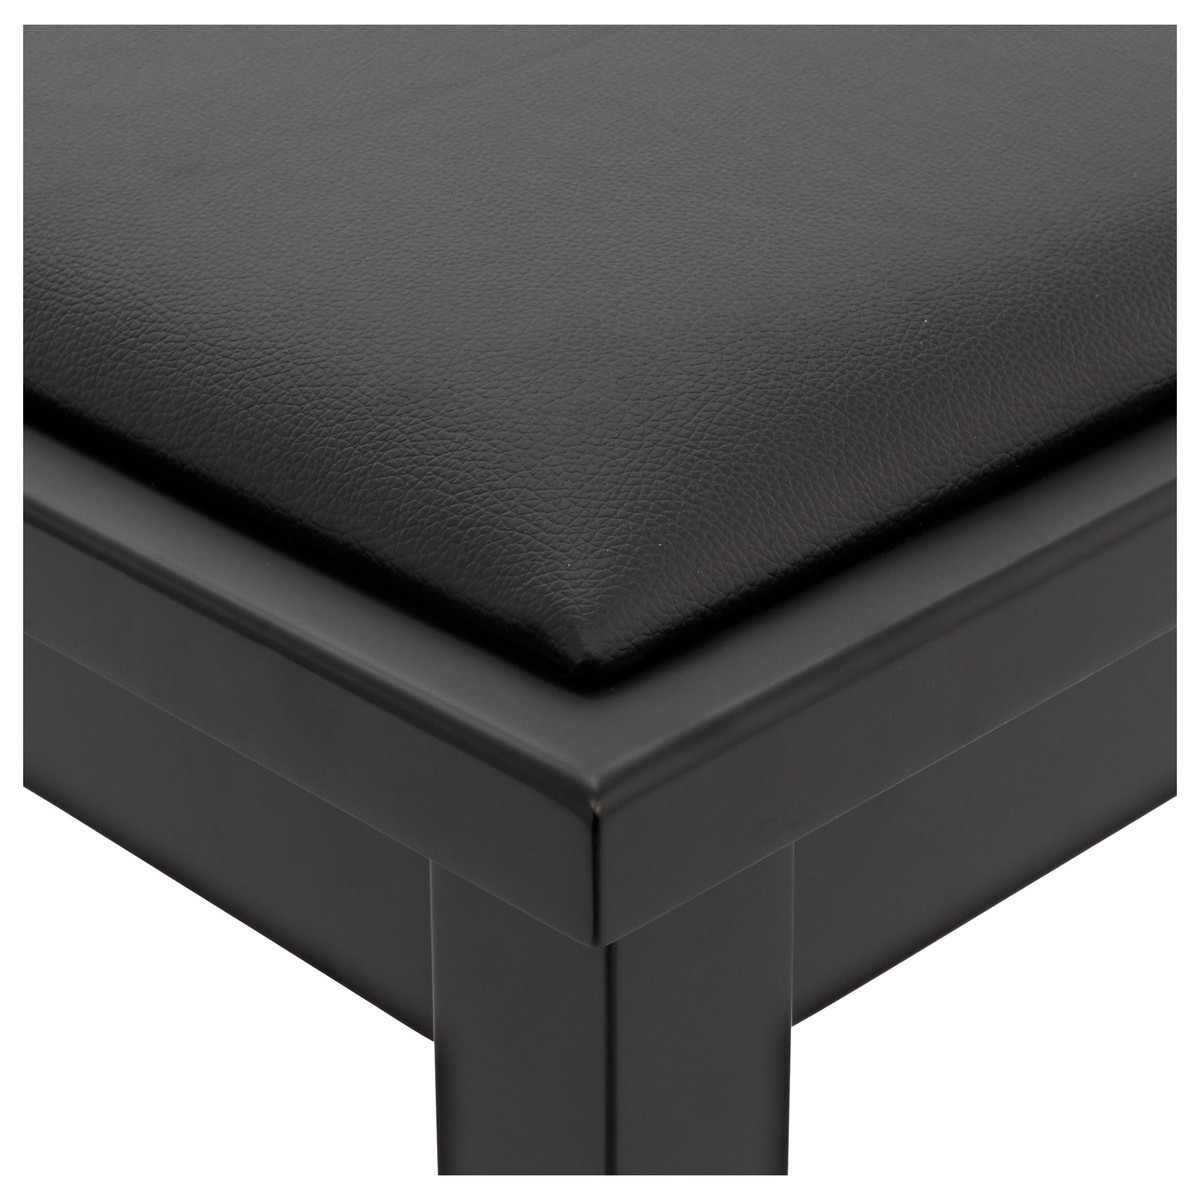 Beau Duet Piano Stool With Storage By Gear4music, Matte Black